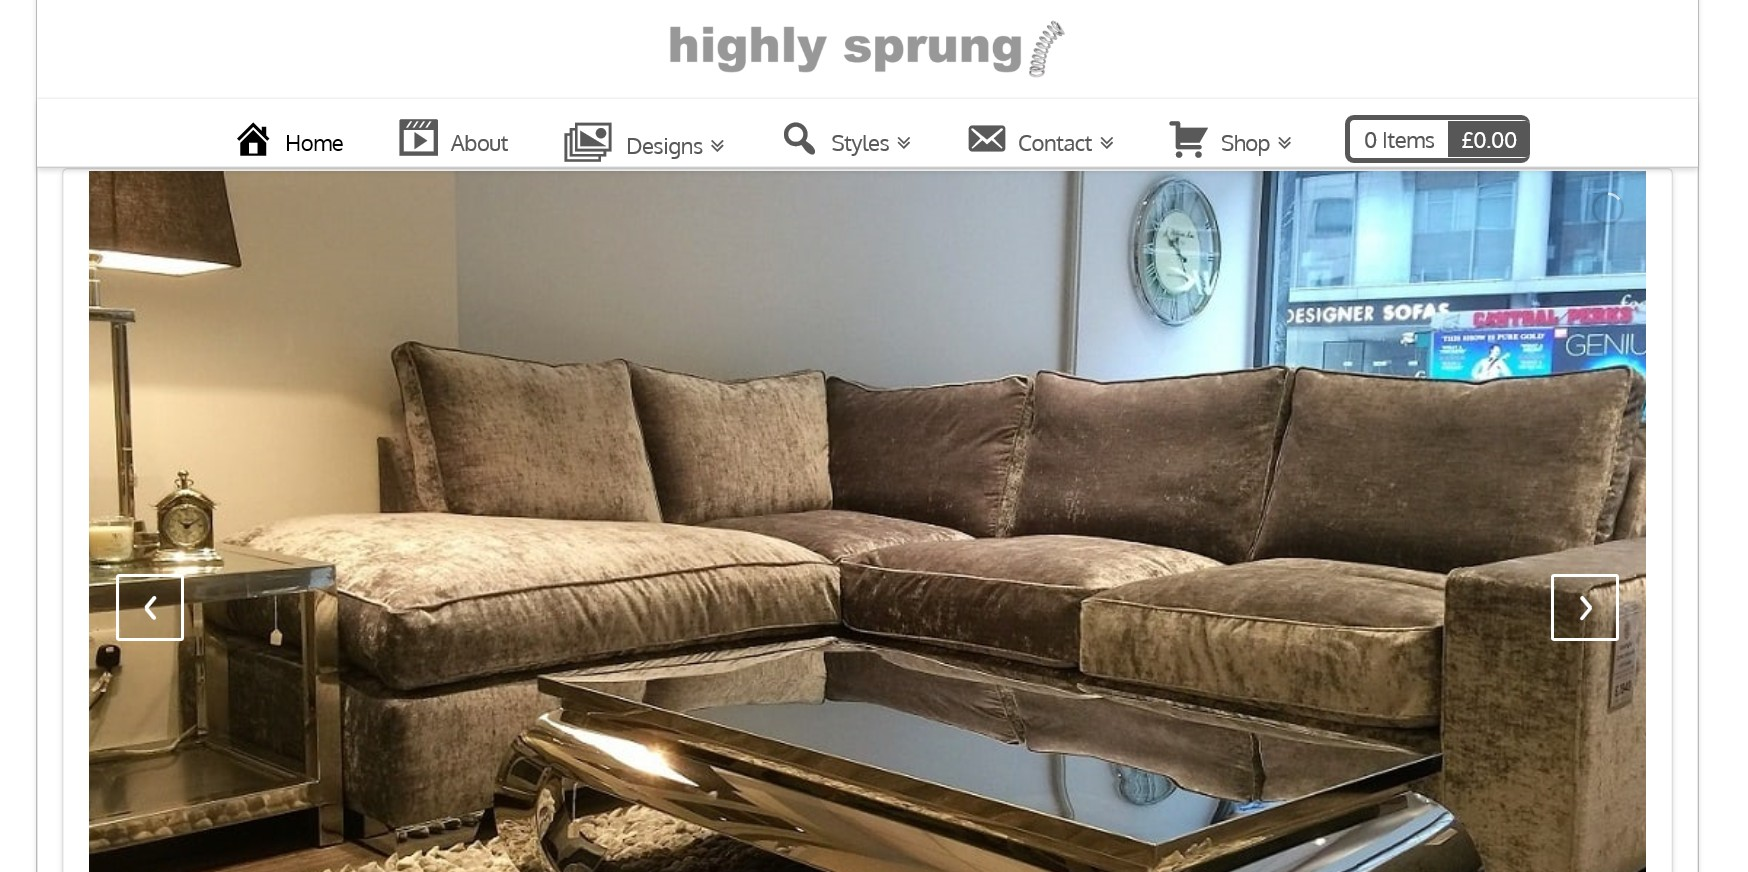 Highly Sprung Sofas Website By T900 Website Design in Surrey